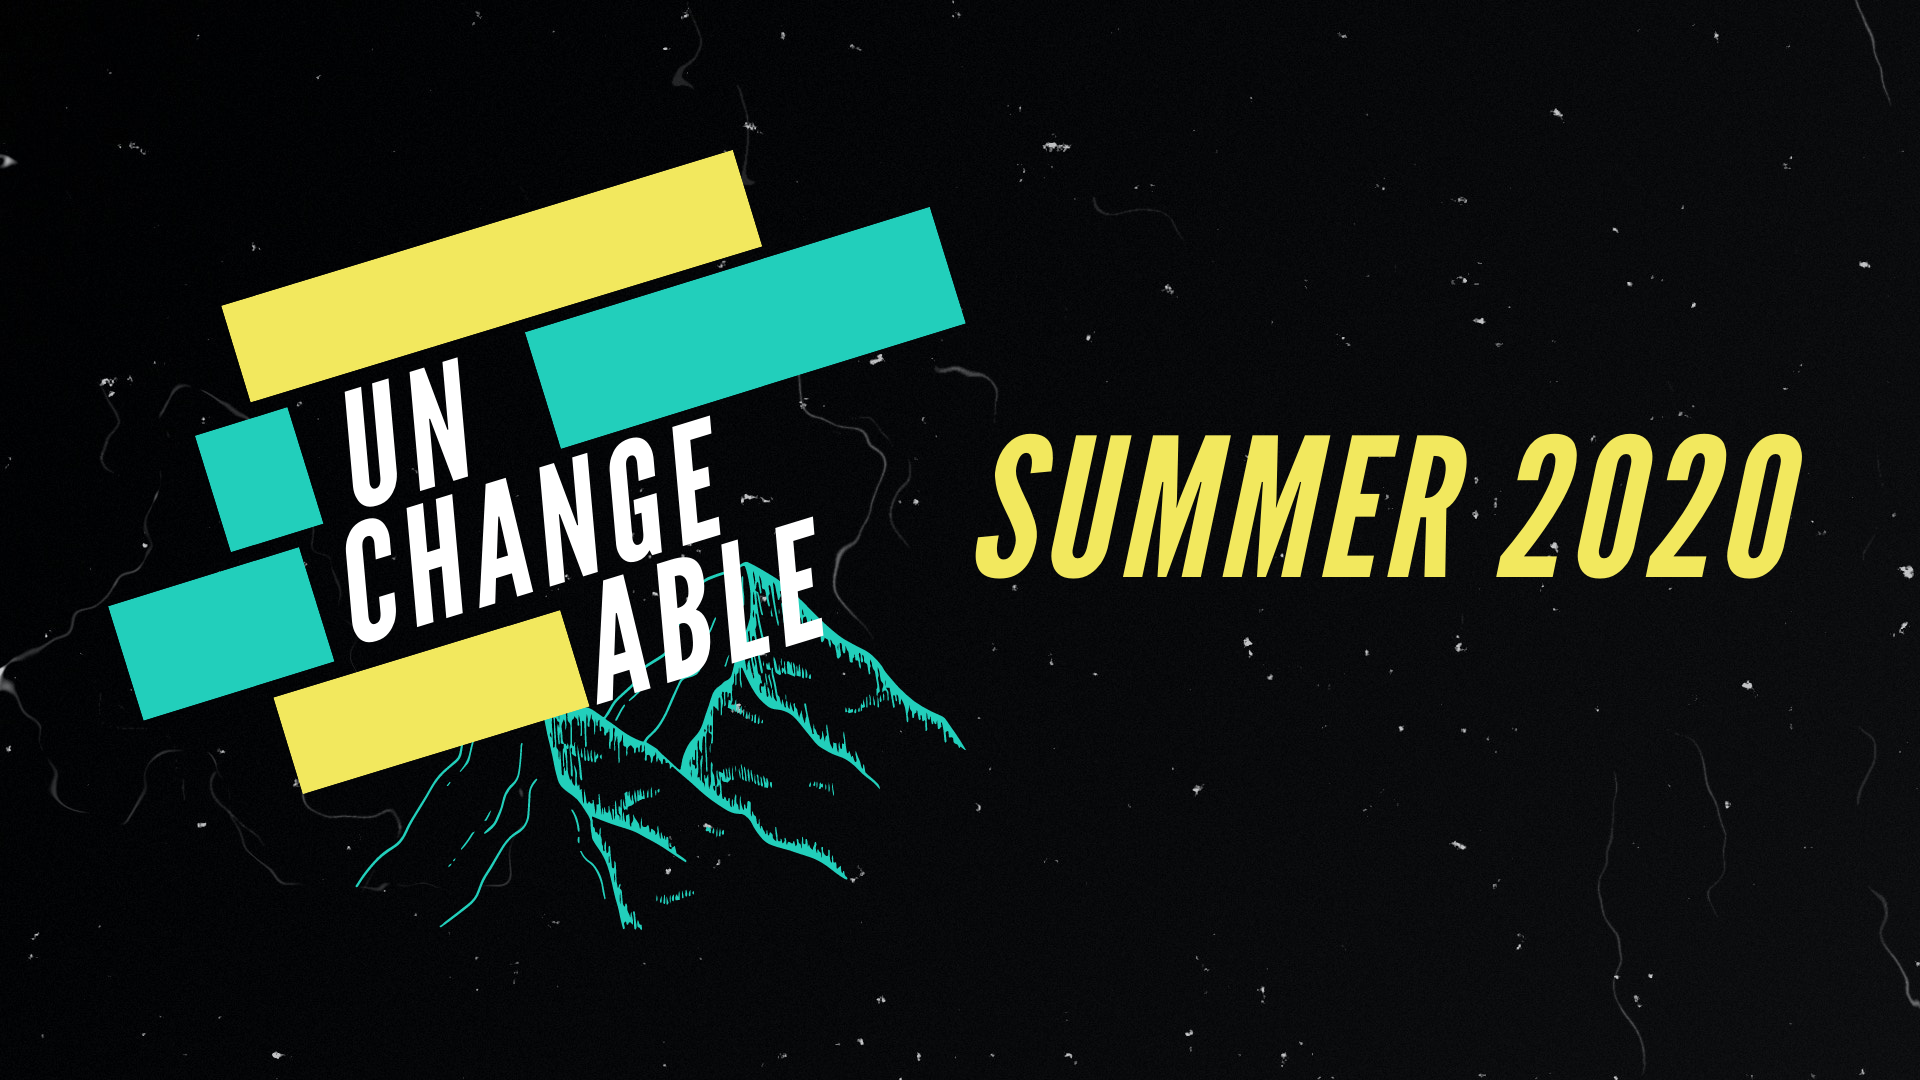 Unchangeable - TSM Summer 2020